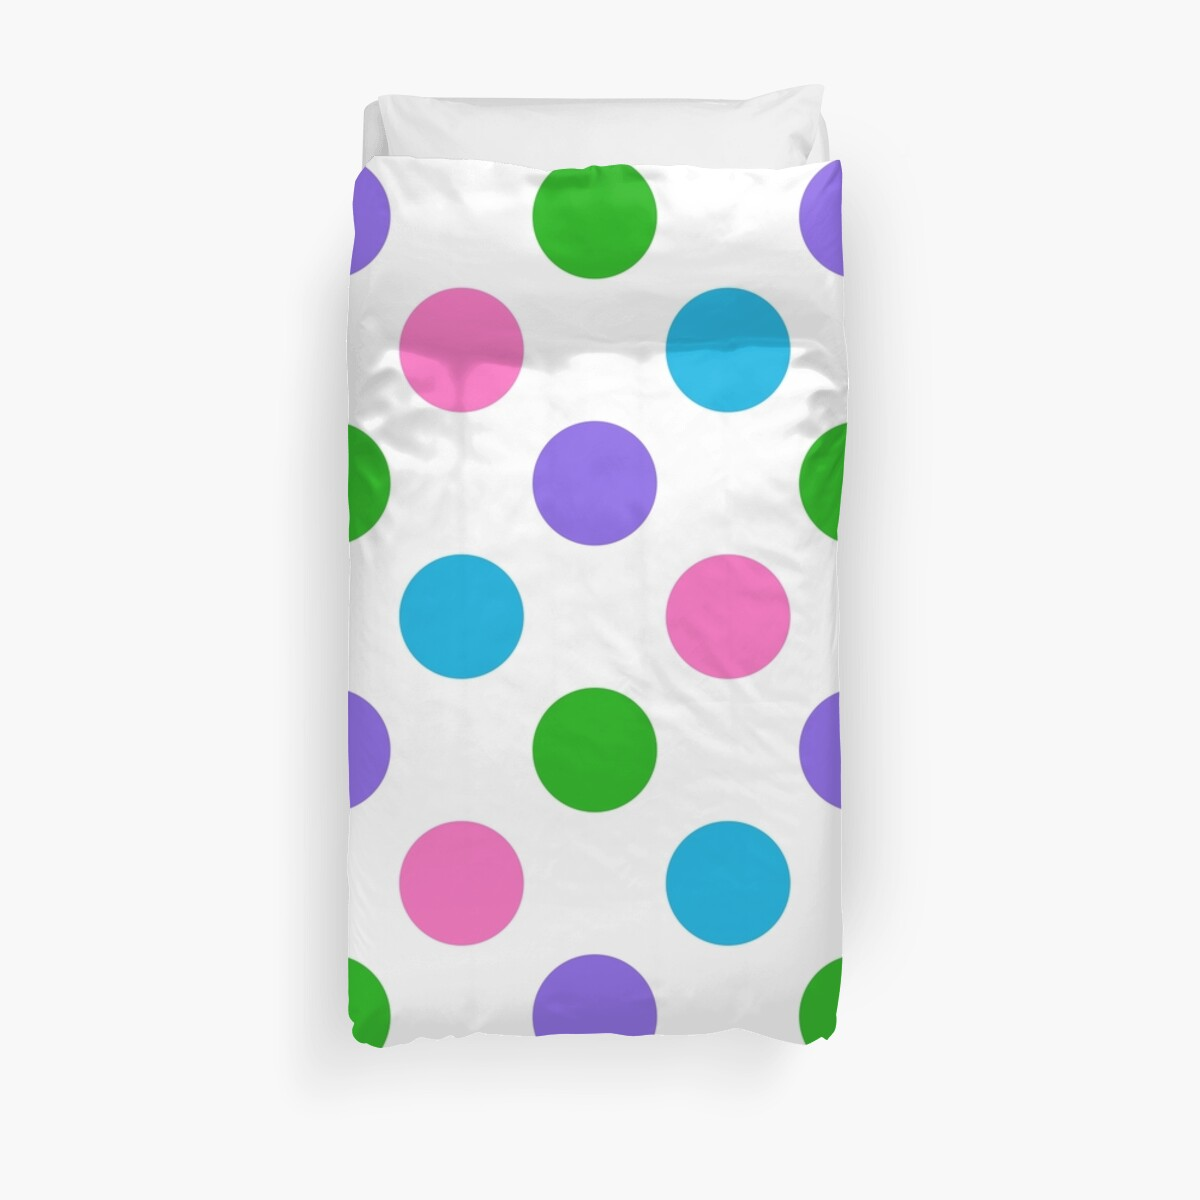 Mulit Color Polka Dots by Designedwithtlc